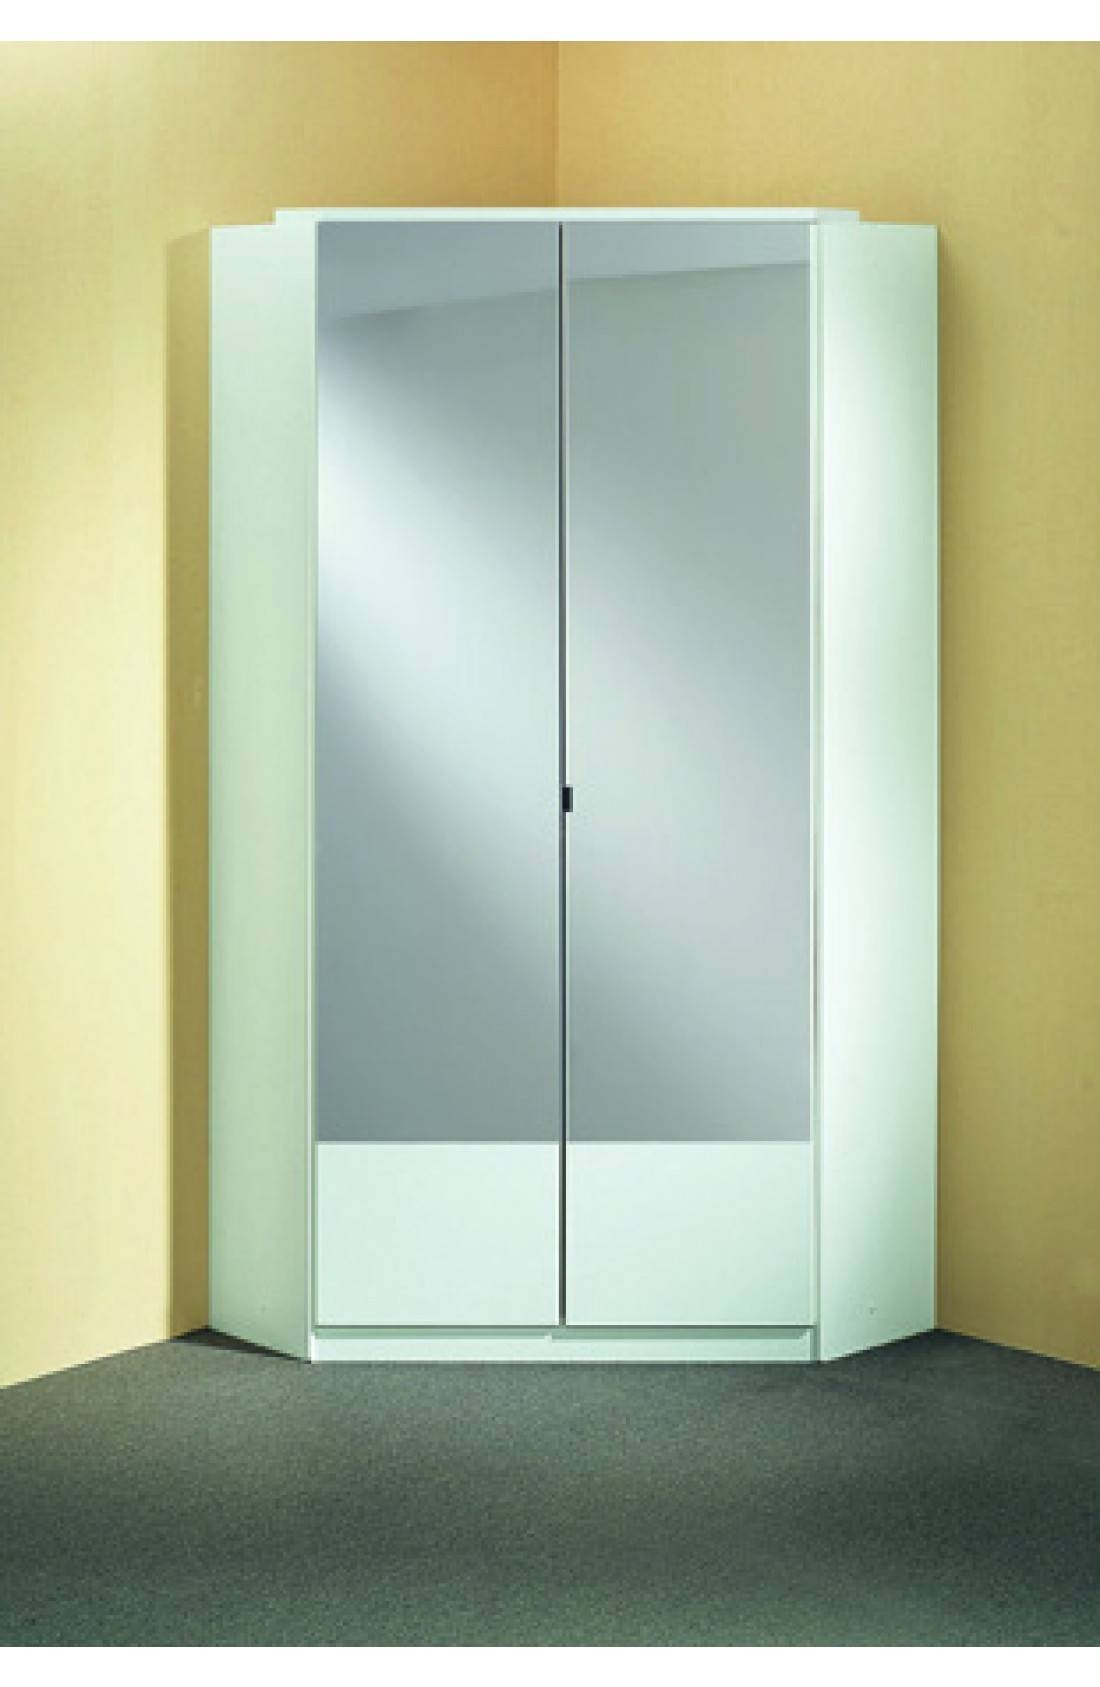 Slumberhaus 'imago' German Made Modern Alpine White & Mirror 2 inside Corner Mirrored Wardrobes (Image 13 of 15)